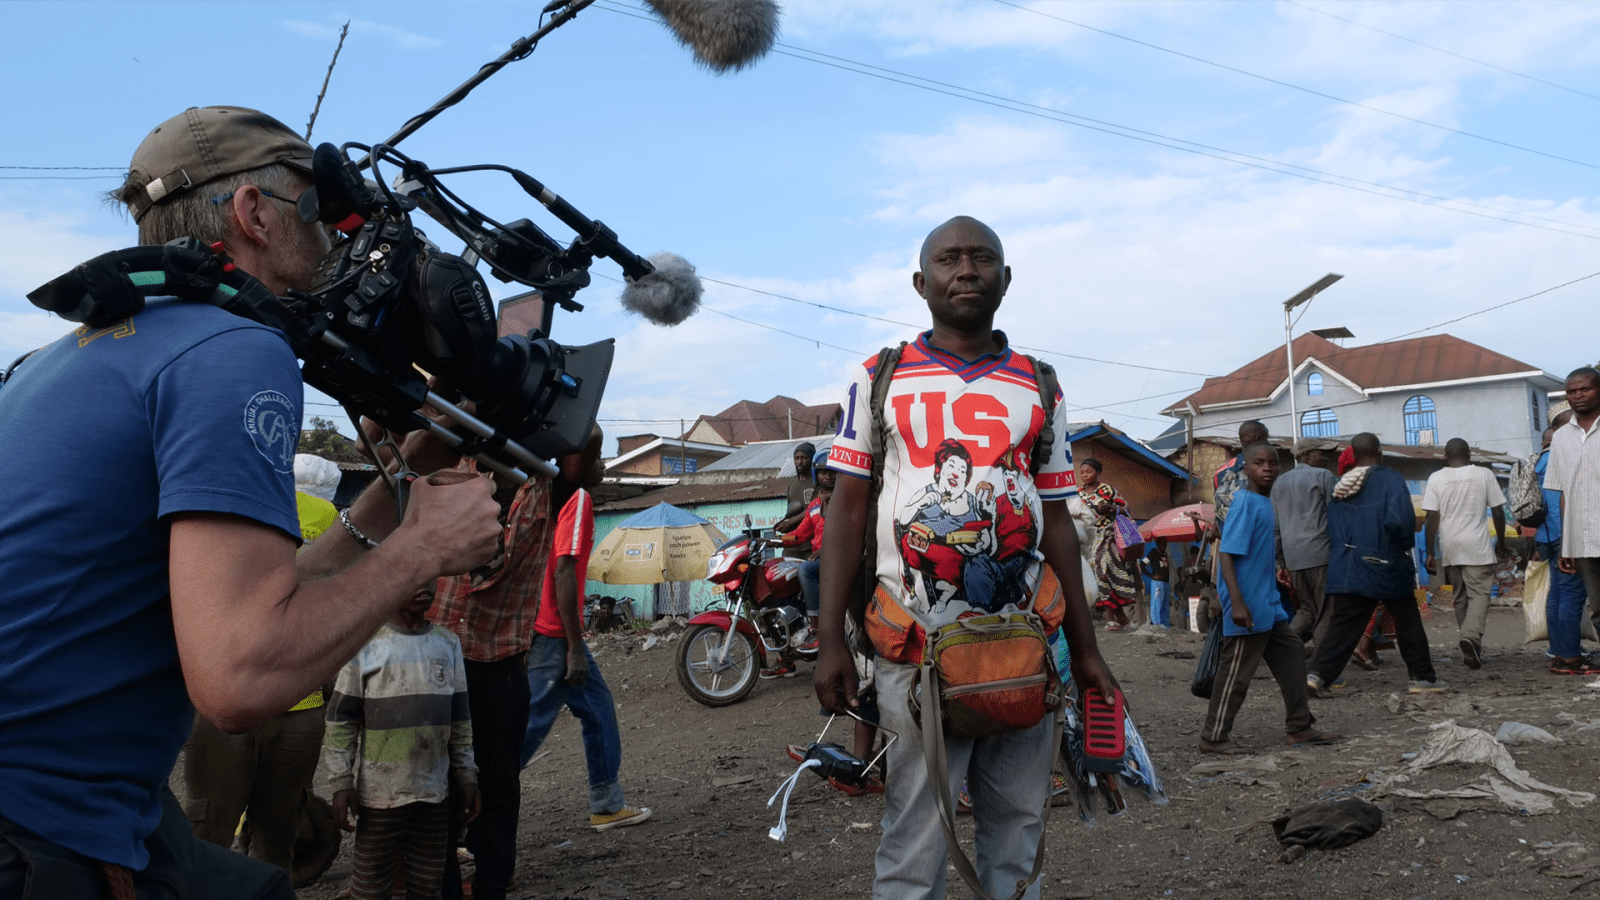 'Stop Filming Us' – Questioning Neocolonialism through the Camera Lens